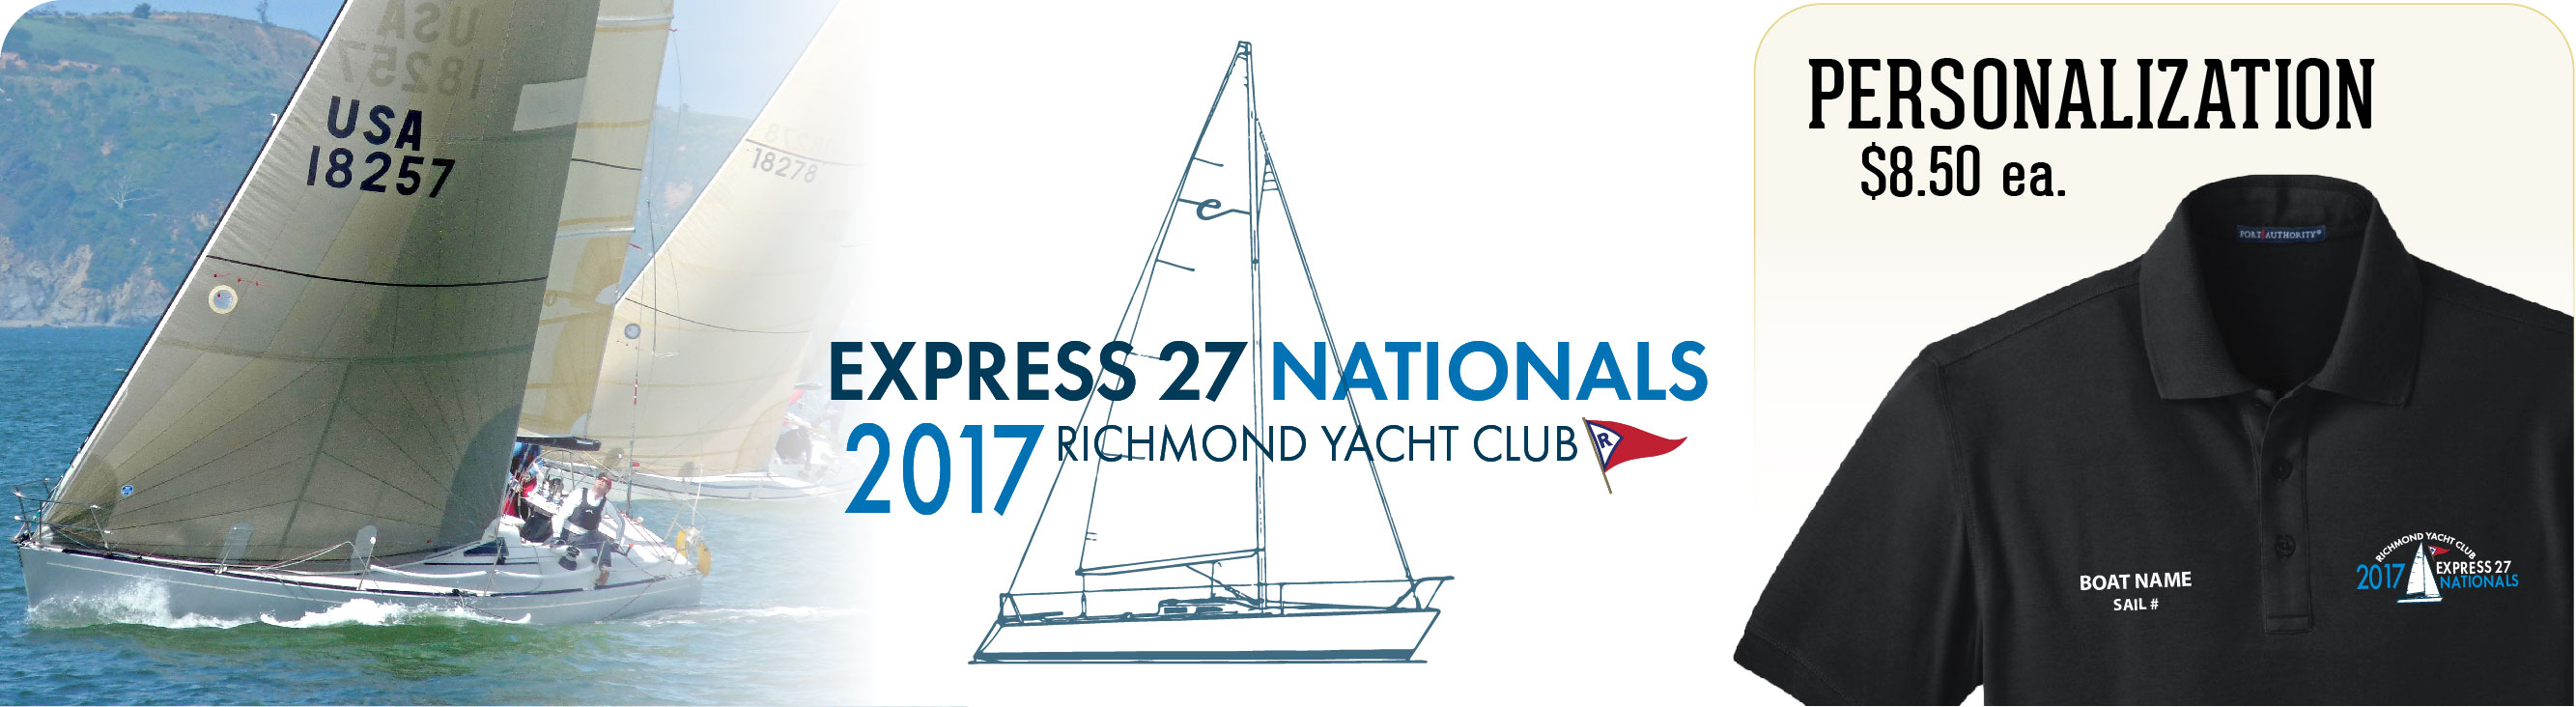 express-27-nationals-2017-banner-01.jpg